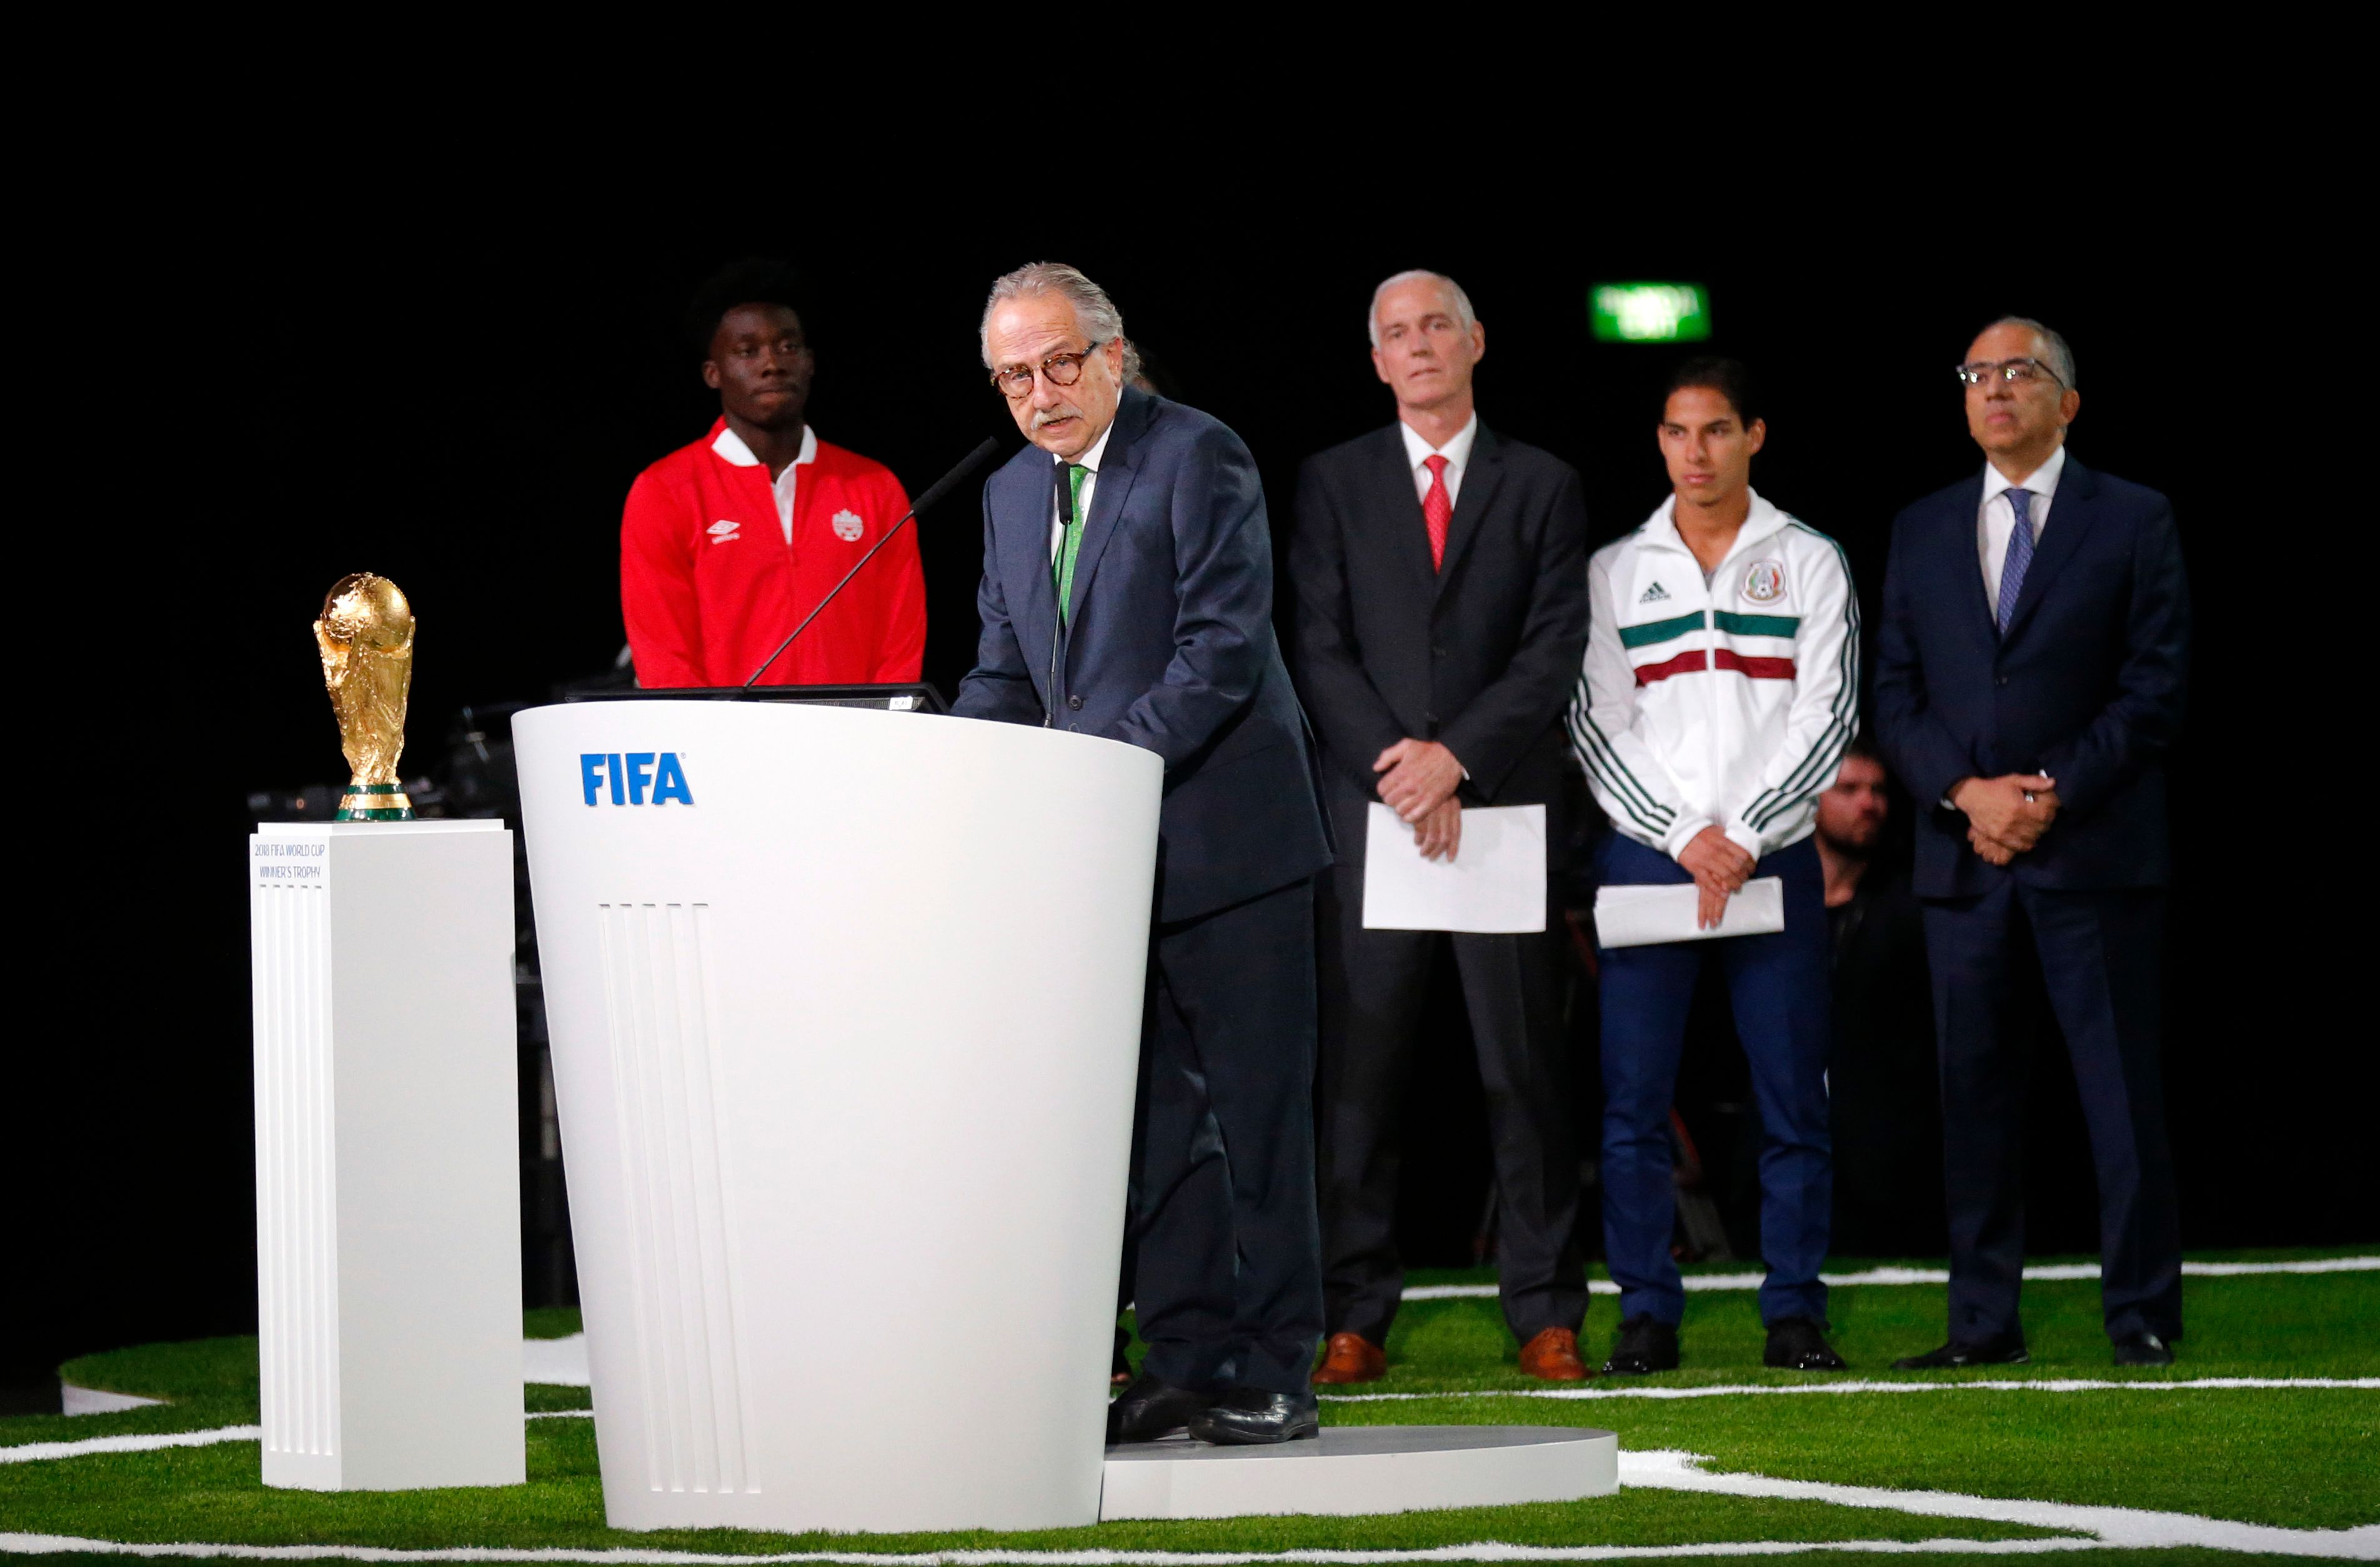 The Latest: North America wins vote to host 2026 World Cup